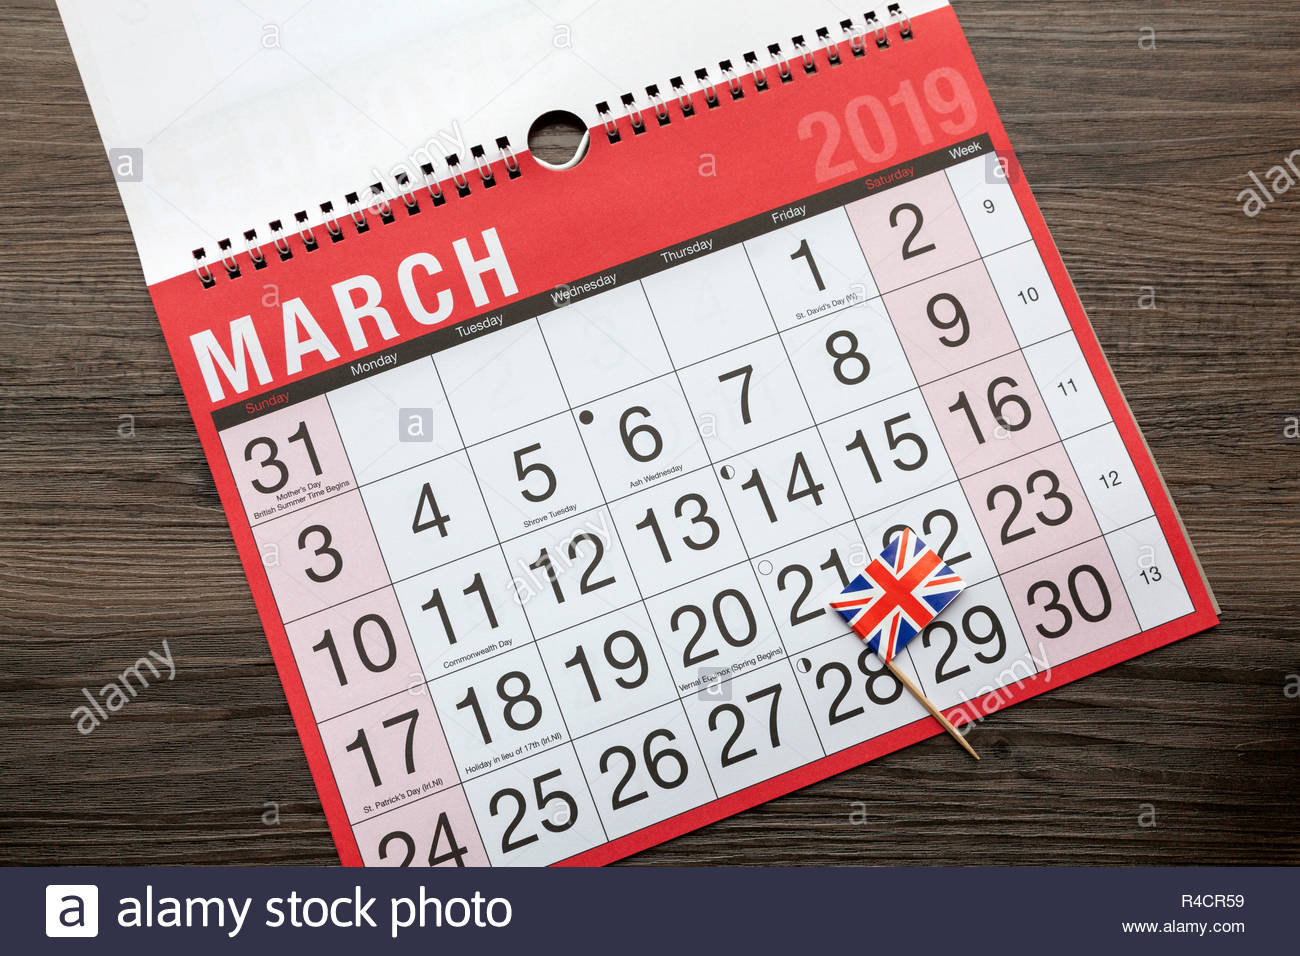 Calendar page showing a Union Jack Flag against 29th March 2019 - Brexit Concept - Stock Image